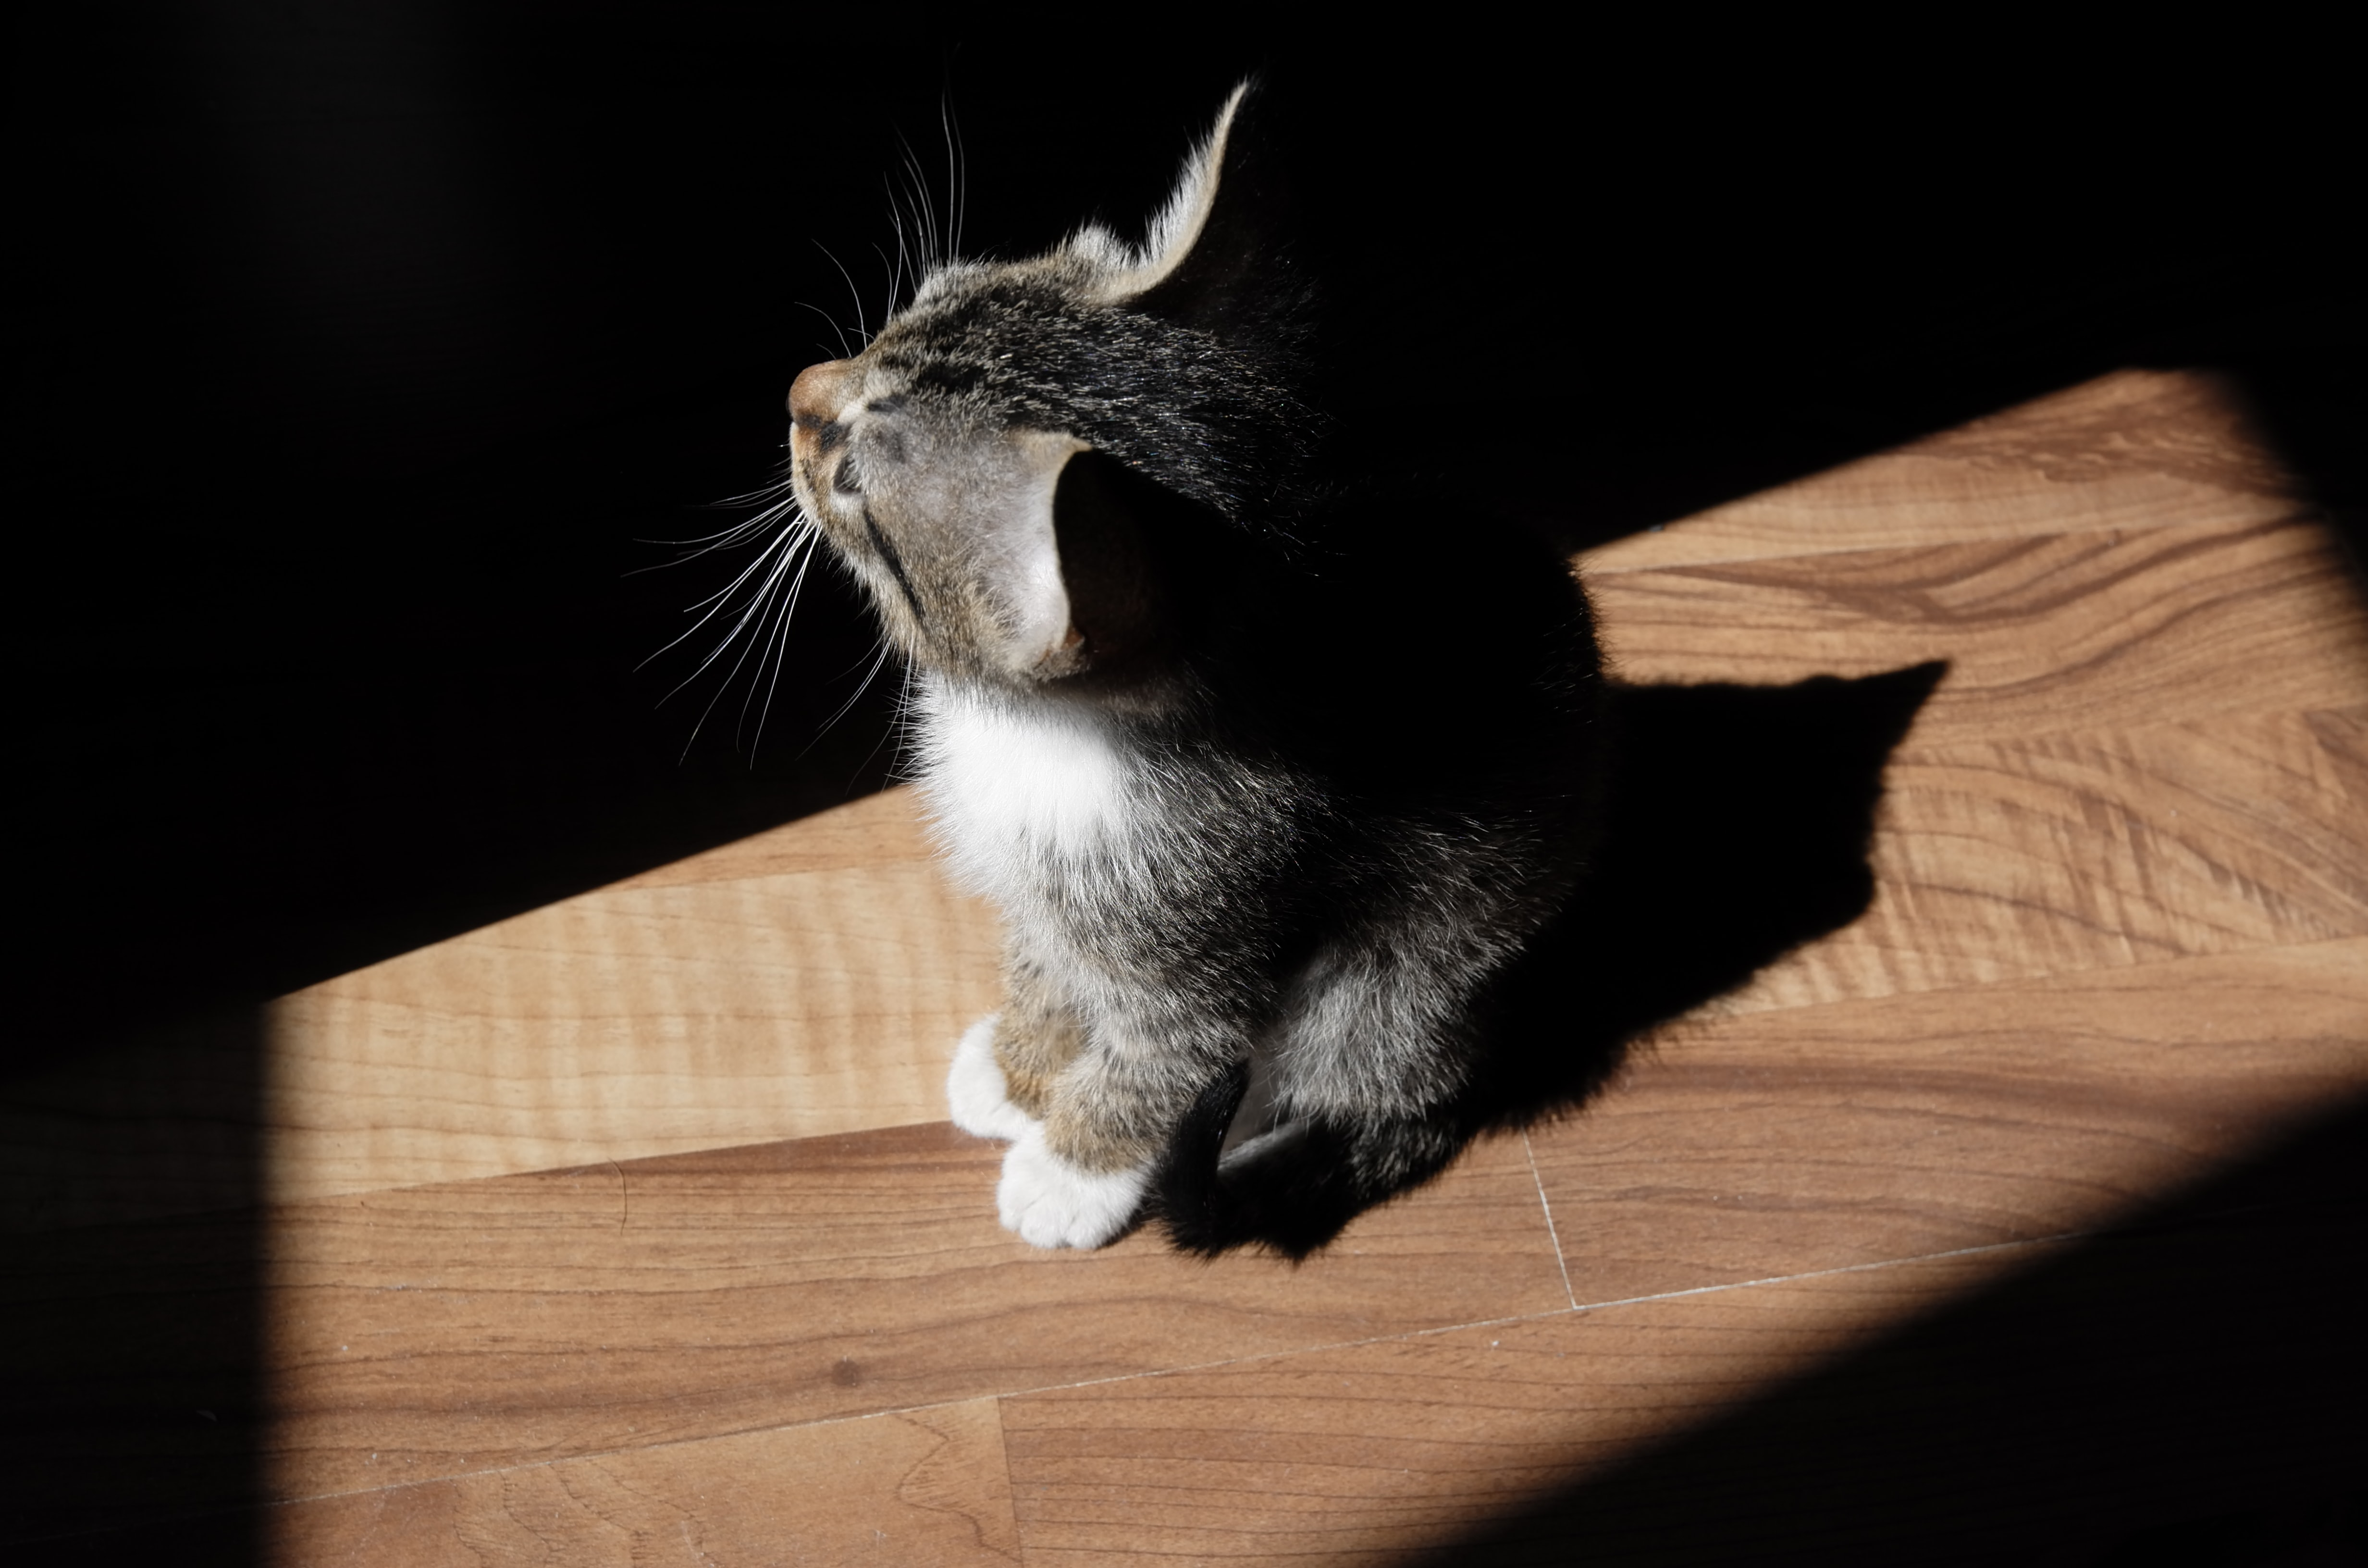 A high-angle shot of a tabby kitten sitting in a patch of sunlight on a wooden floor